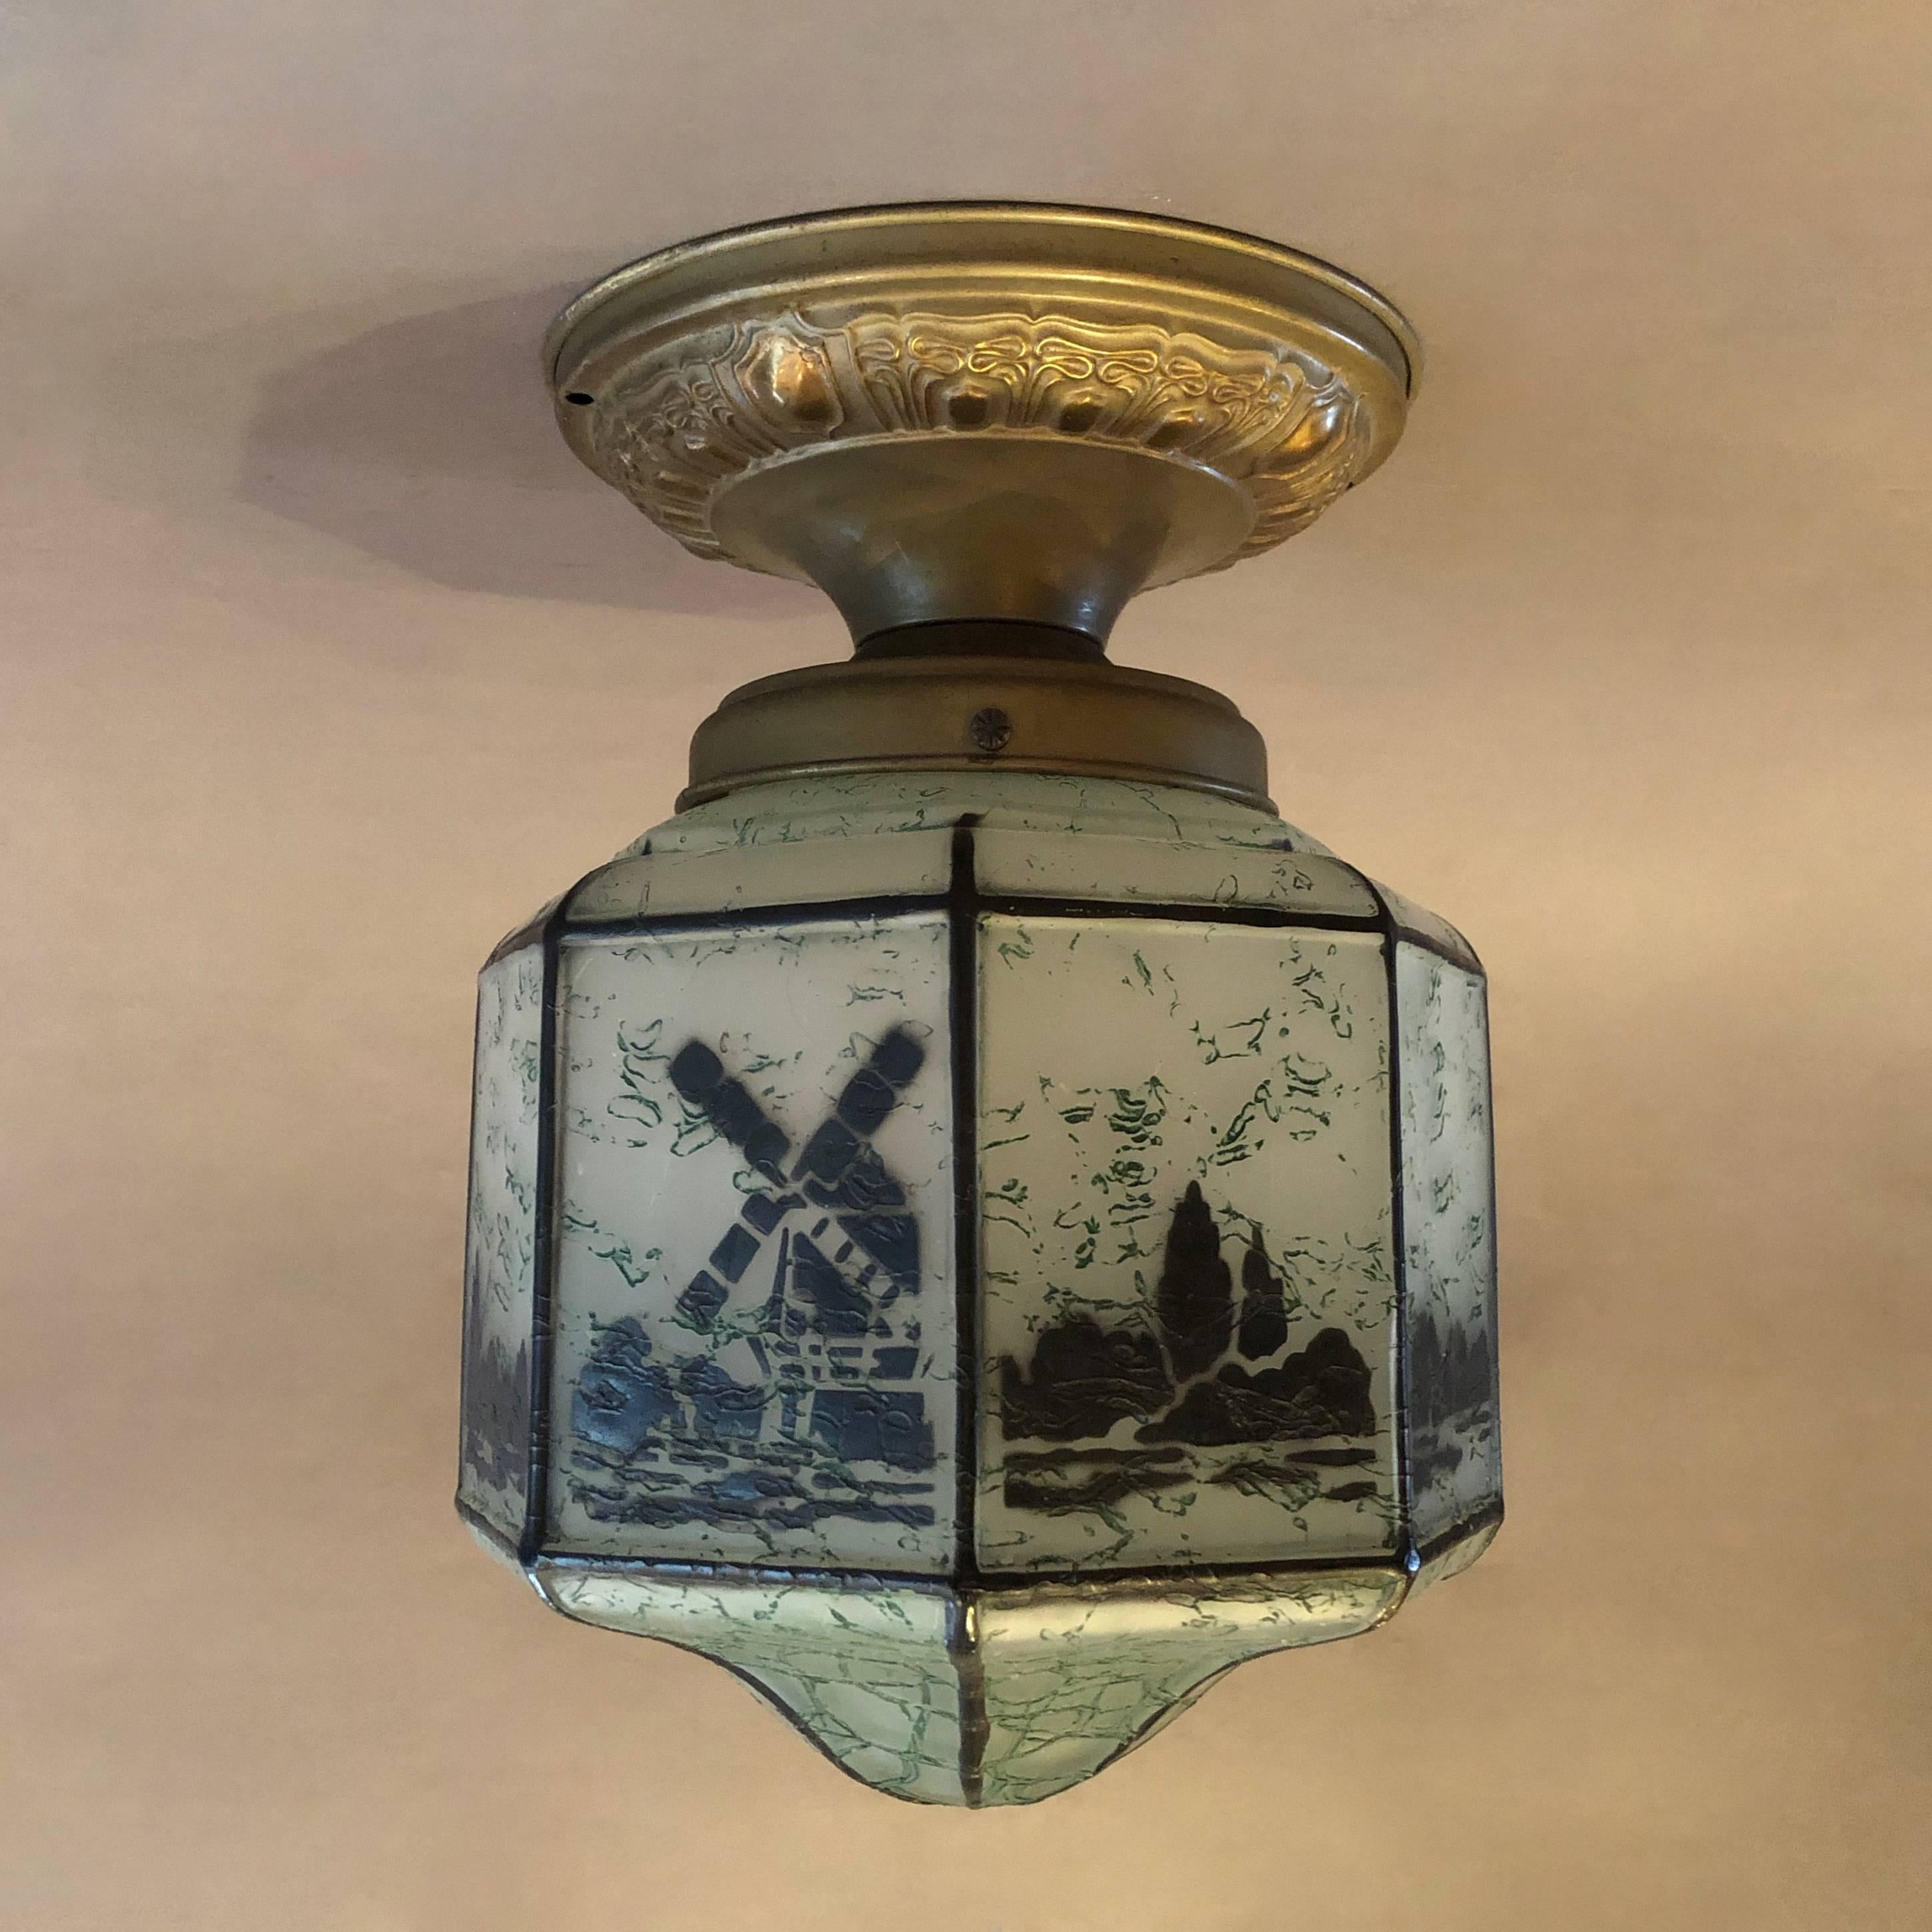 Arts and Crafts Hand-Stencilled Octagonal Flush Mount Ceiling ...